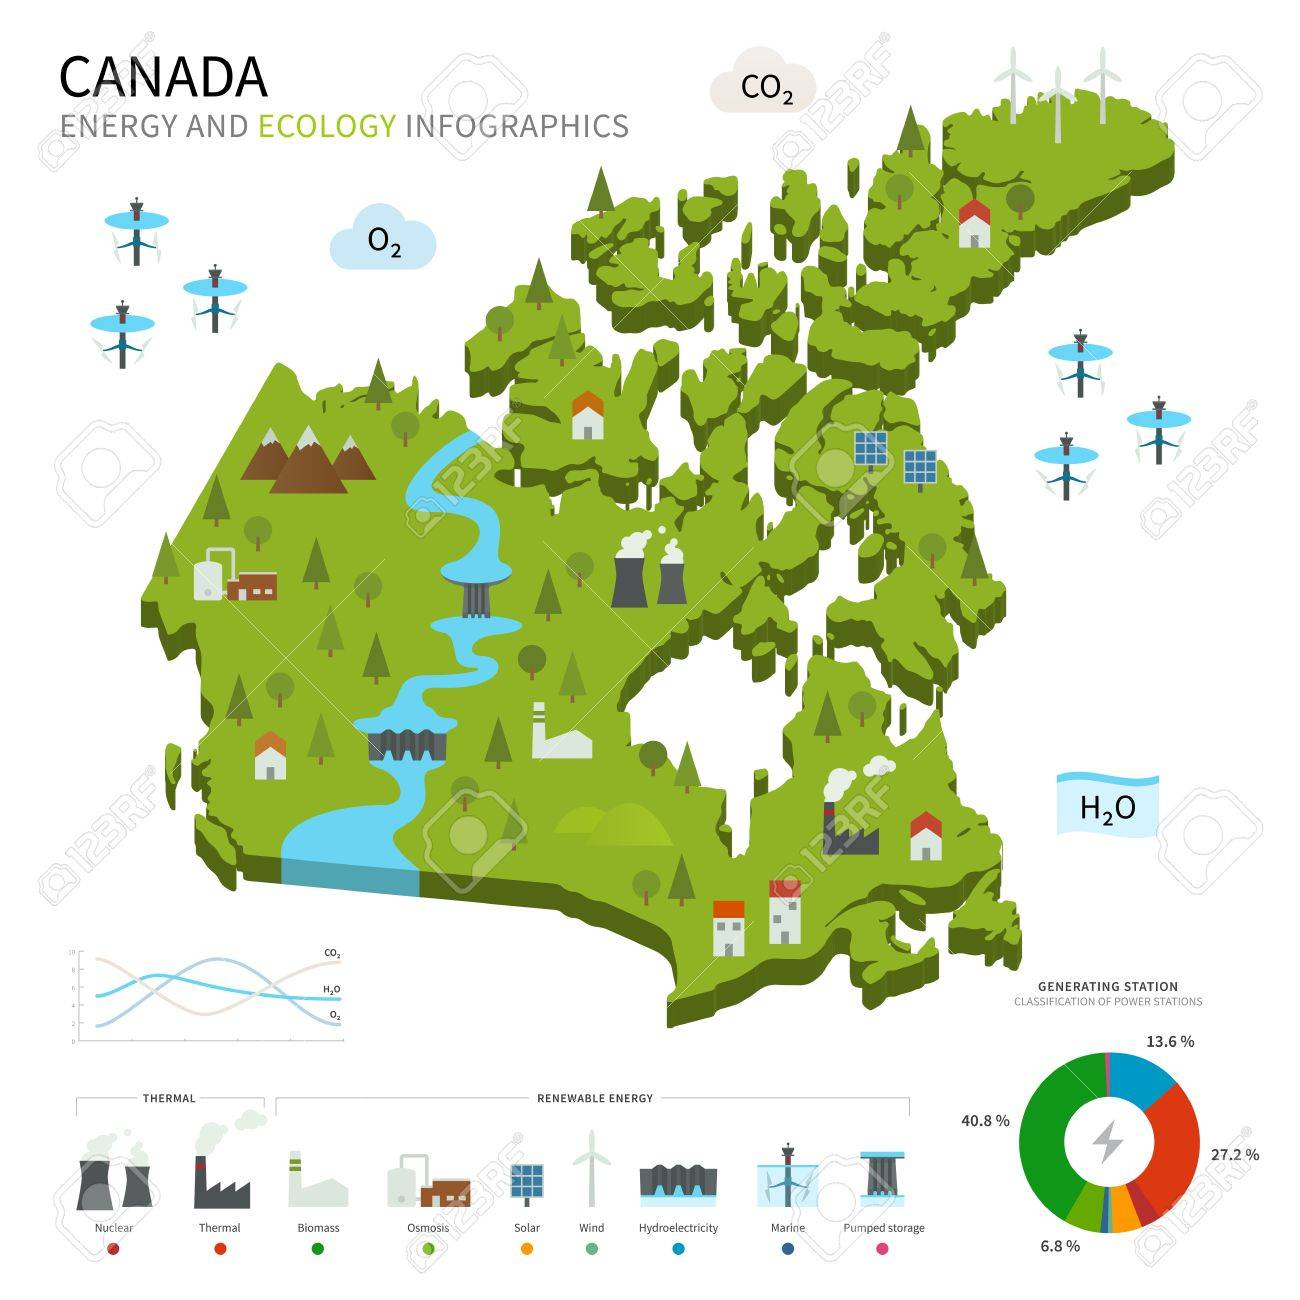 Energy industry and ecology of Canada